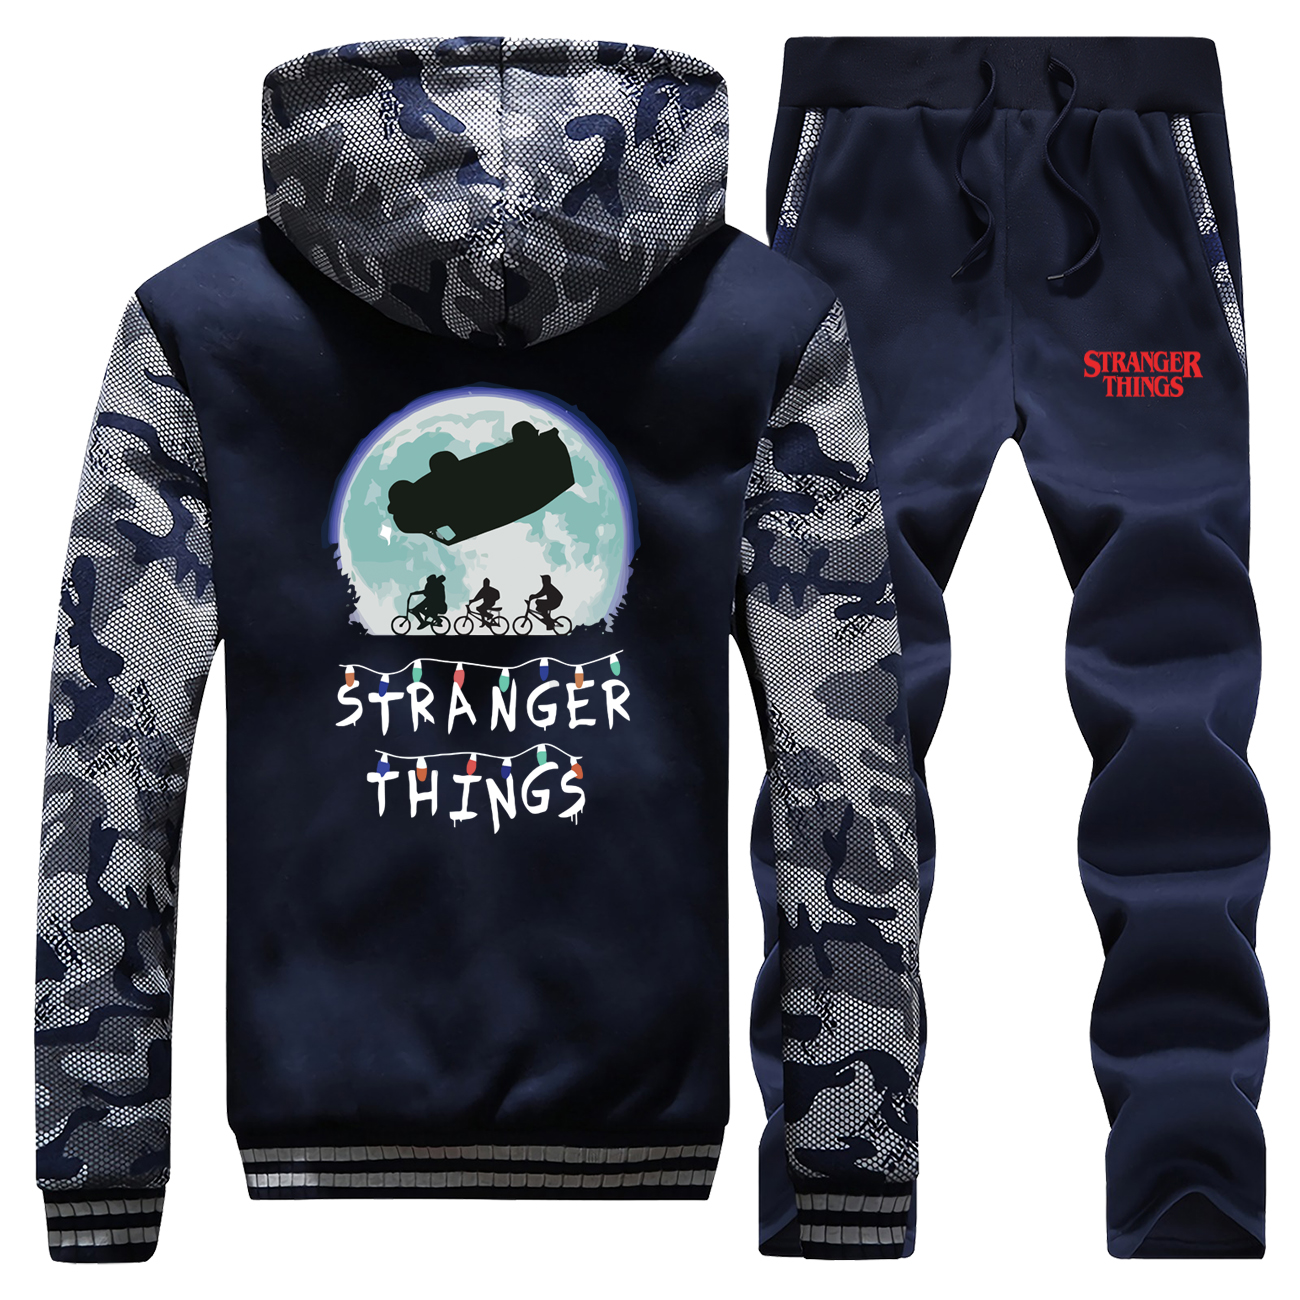 Camo Male Set Thick Fleece Men Sets Strangers Things Funny Full Suit Tracksuit Winter Bodywarmer Jackets Fashion Eleven Pants